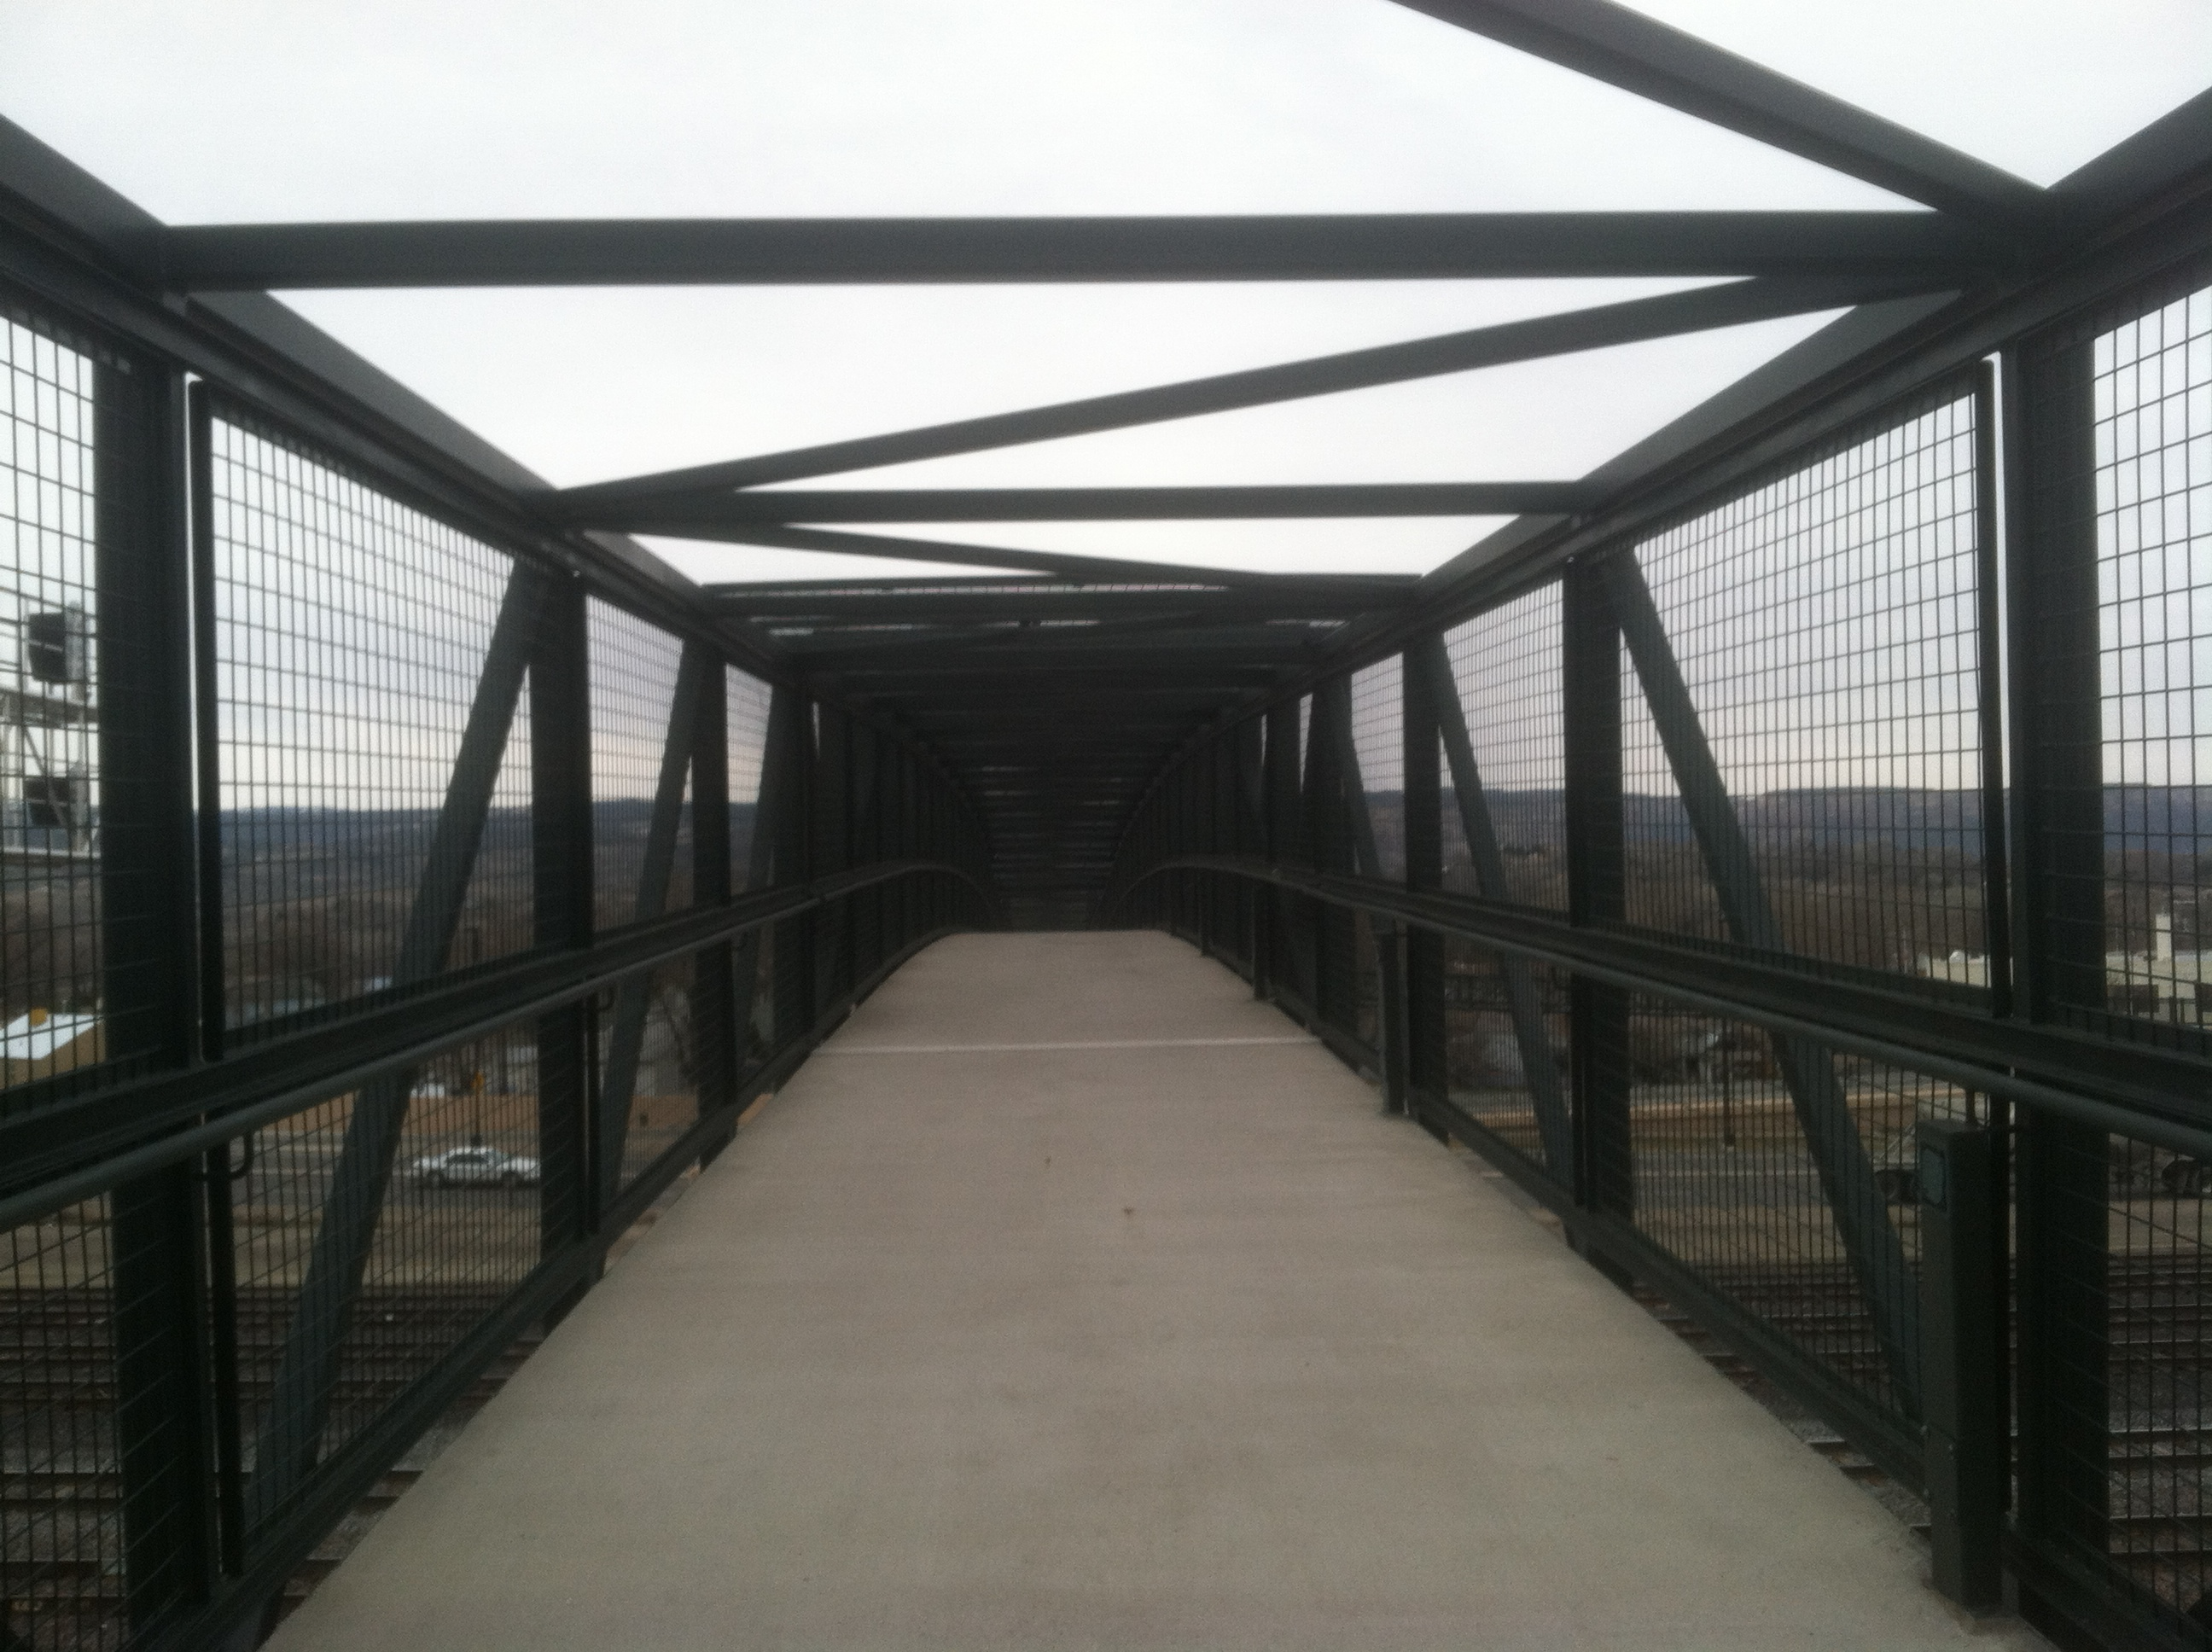 The bridge over the railroad tracks.